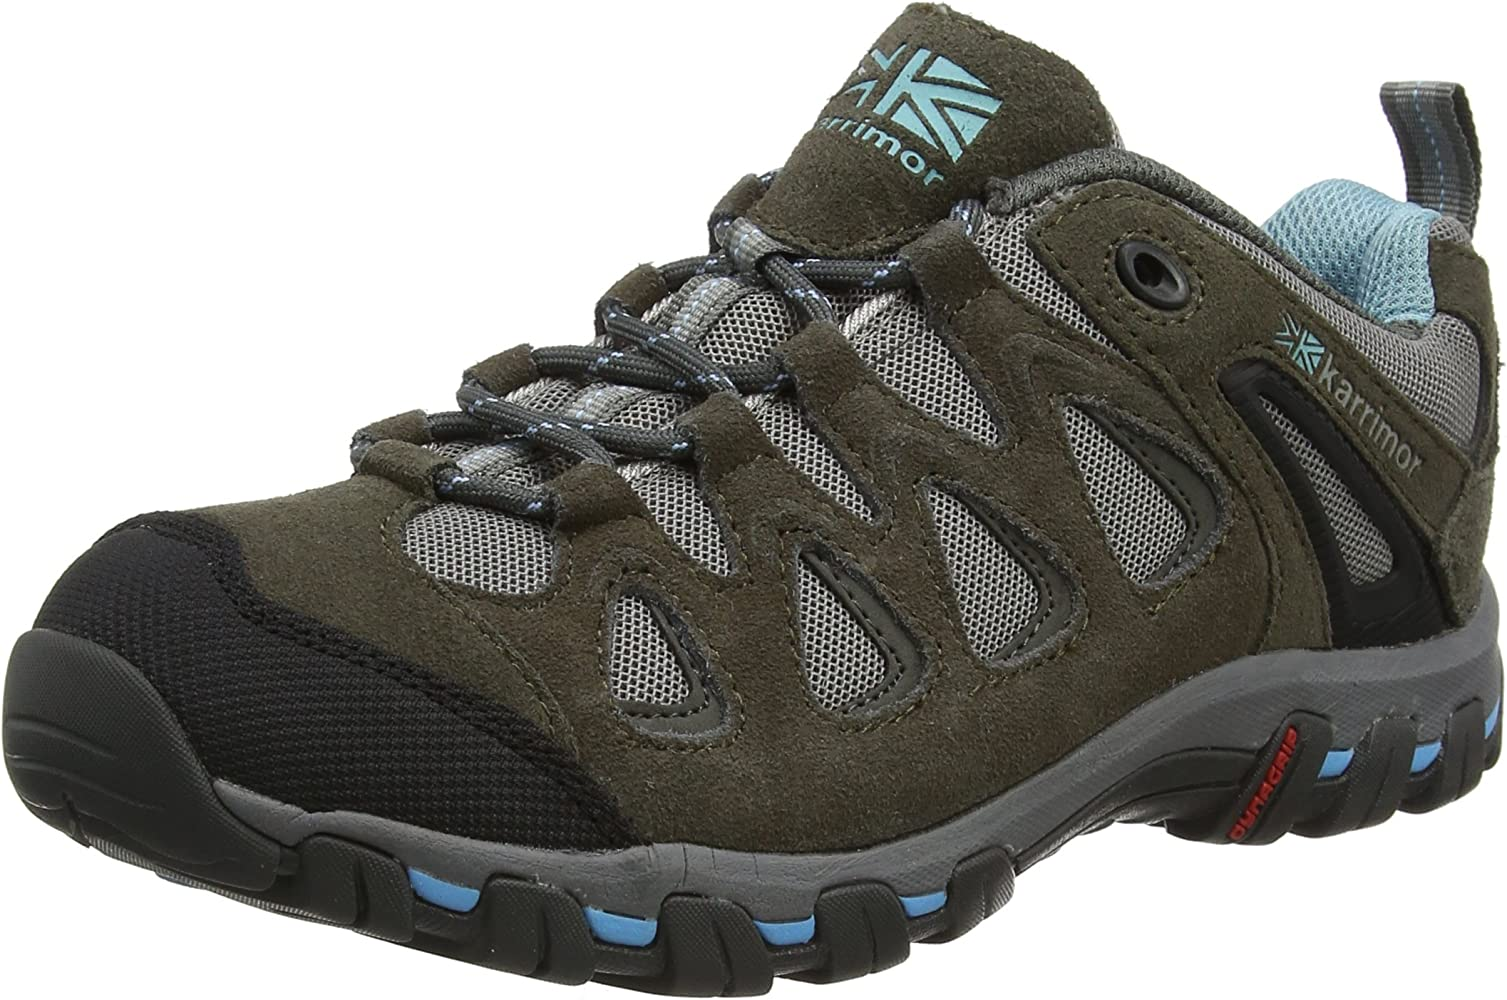 Ladies Low Rise Hiking Boots, Grey